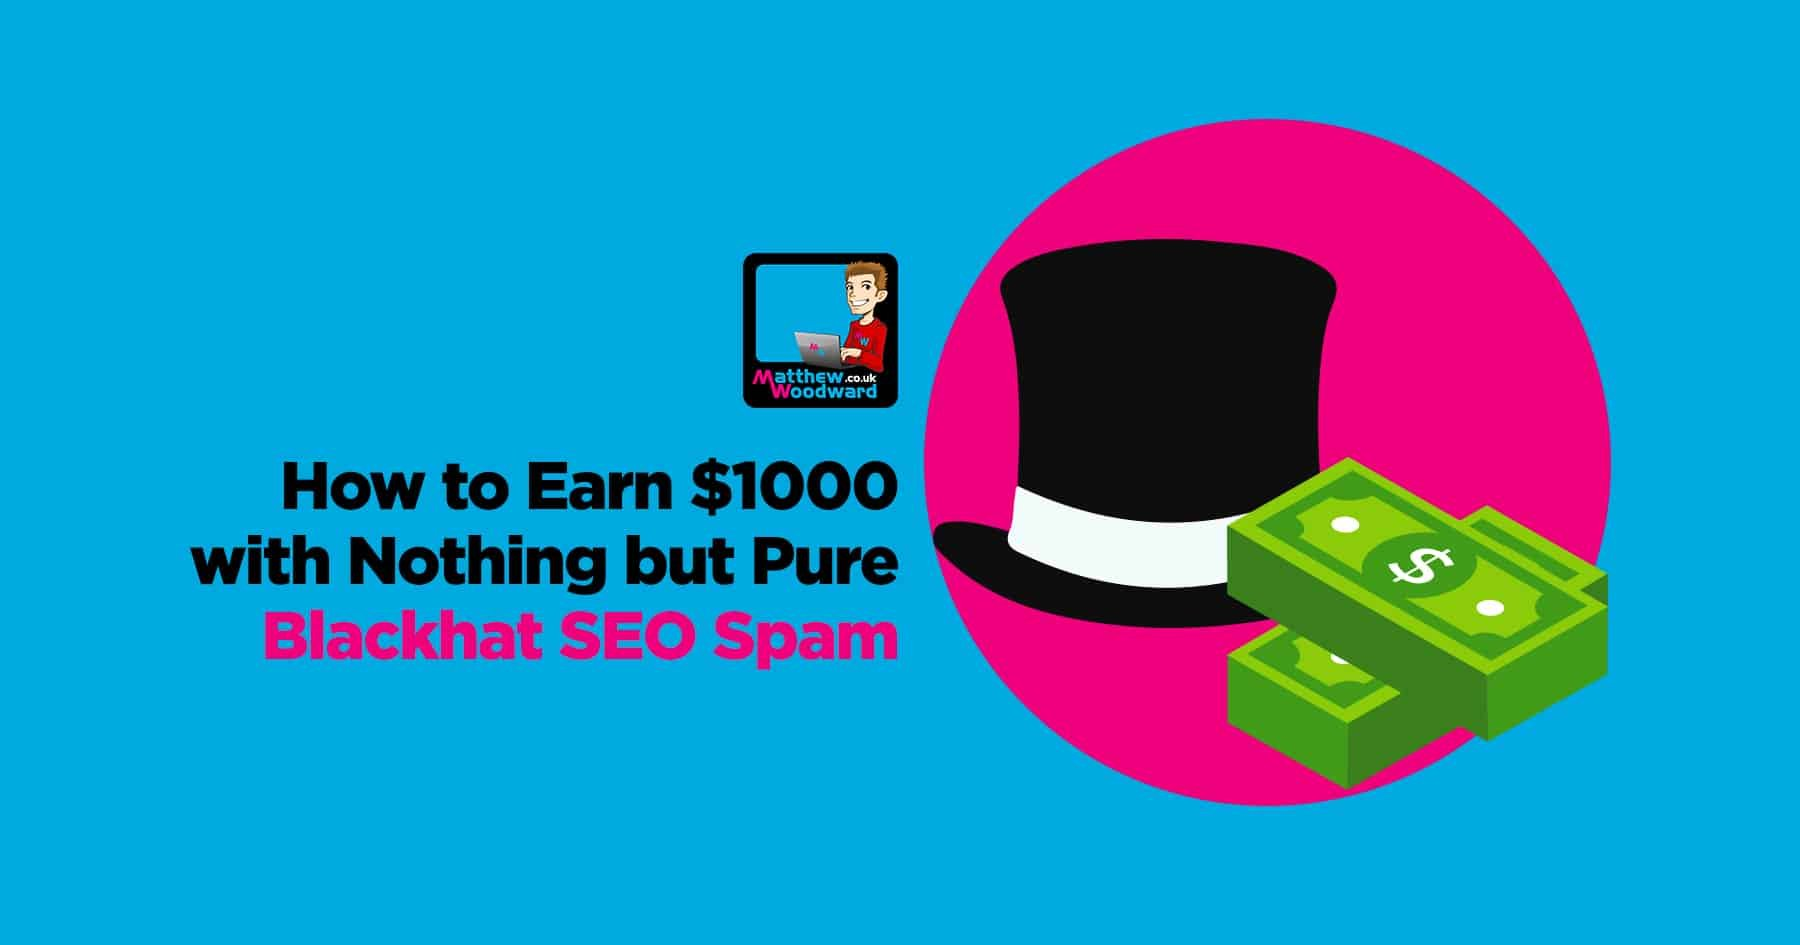 How To Earn $1,000 With Nothing But Pure Blackhat SEO Spam